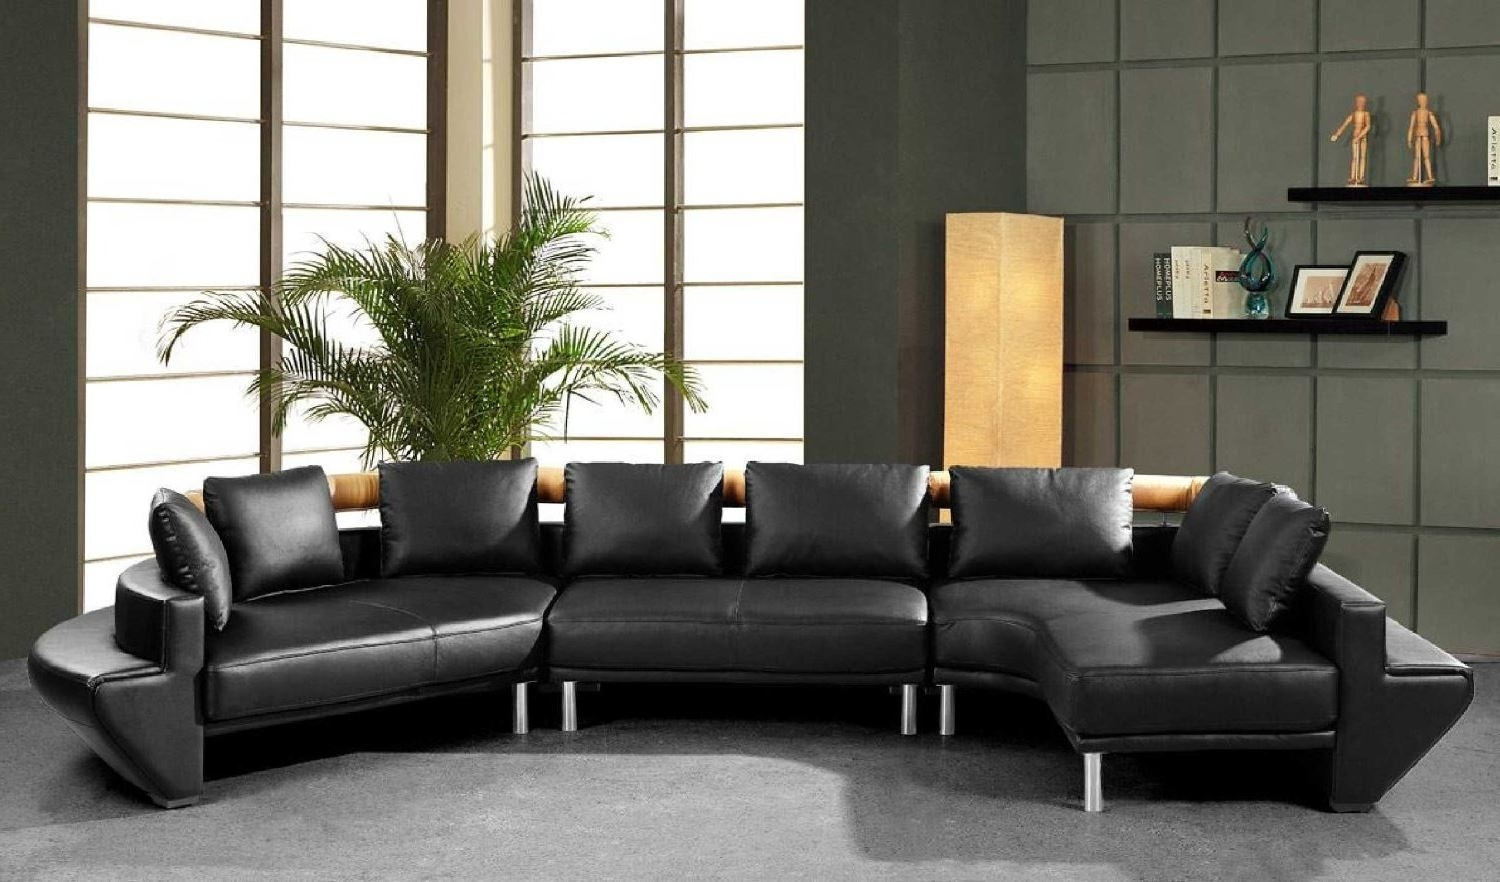 Furniture : 5060 Recliner Sectional Sofa Costco $699 Corner Couch Inside Joining Hardware Sectional Sofas (View 6 of 10)